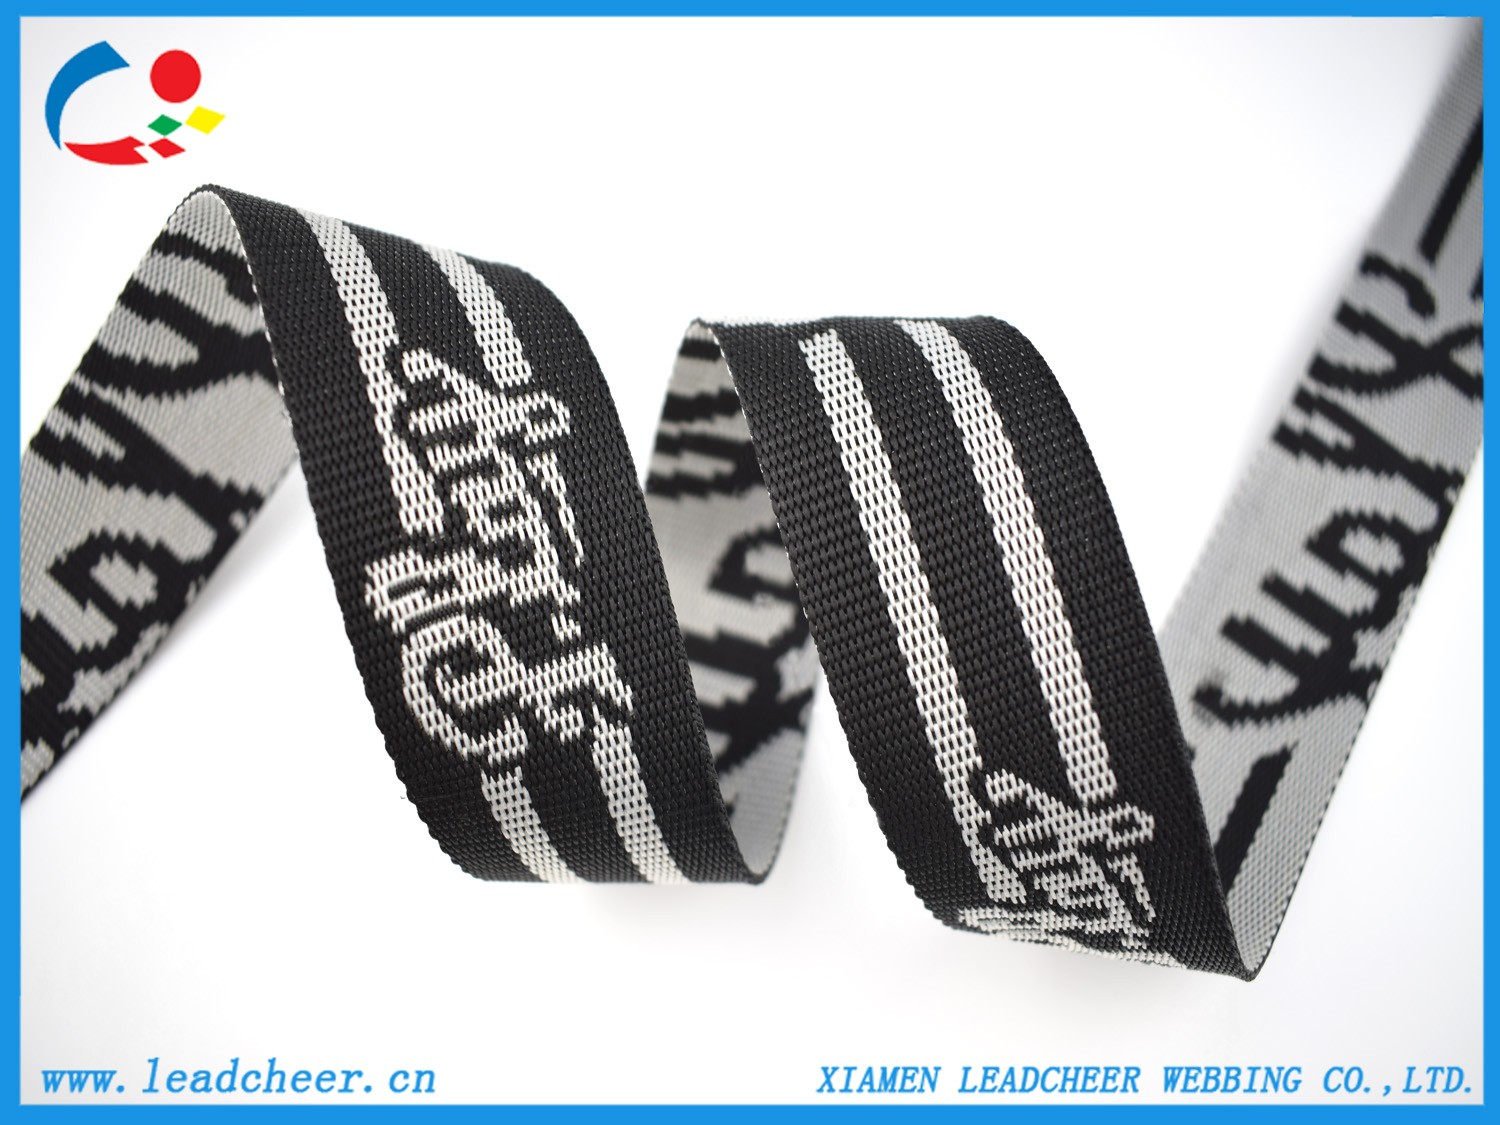 High quality Garment Jacquard Webbing Quotes,China Garment Jacquard Webbing Factory,Garment Jacquard Webbing Purchasing